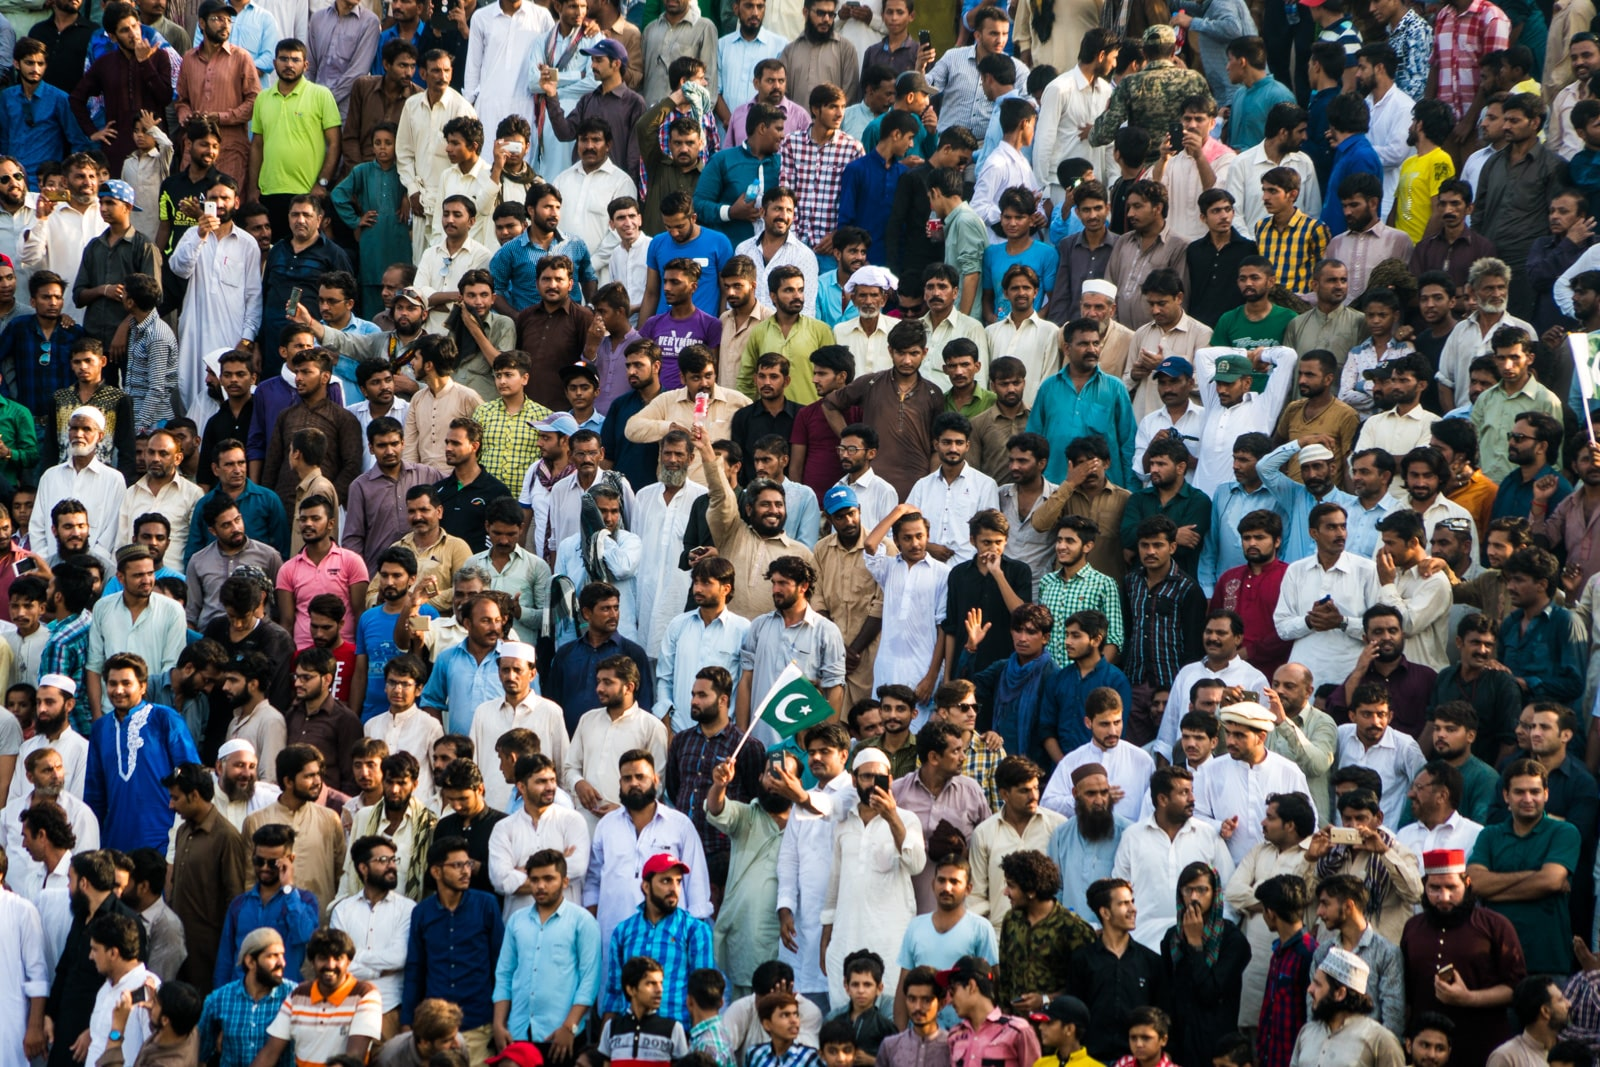 Day trips from Lahore - Crowd of nationalist Pakistani men at the Wagah border ceremony between India and Pakistan